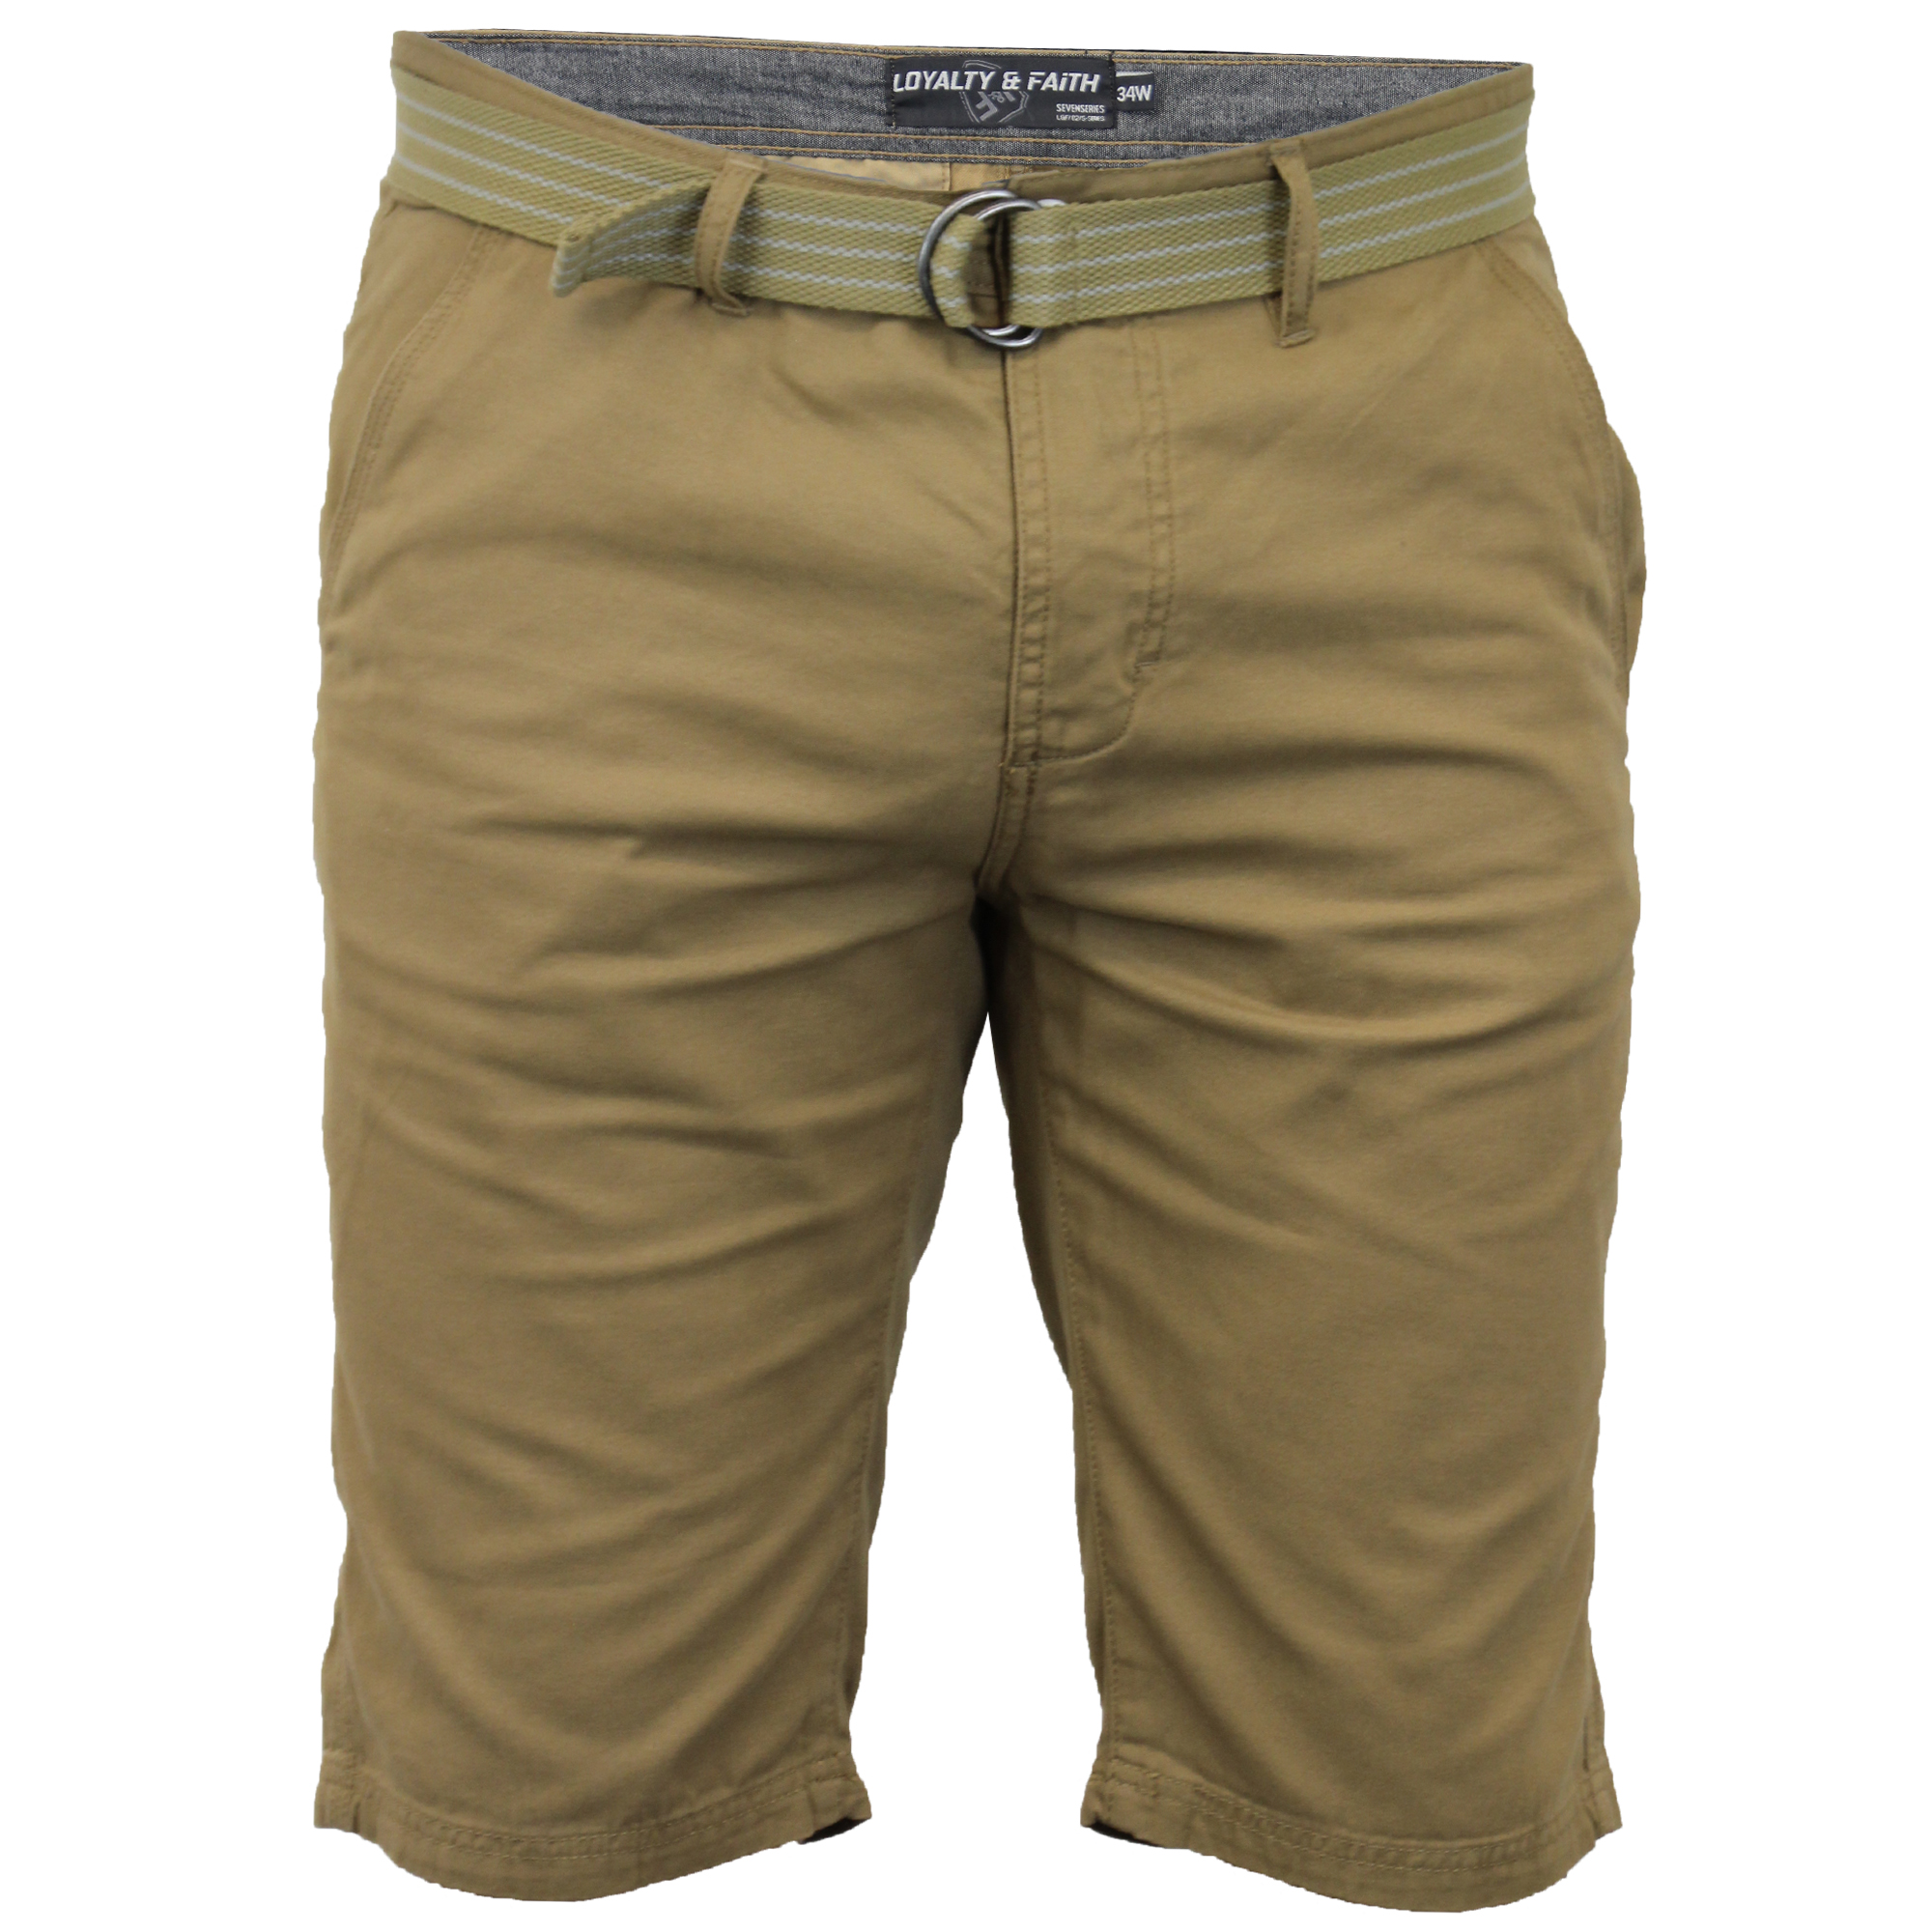 Mens-Chino-Shorts-Threadbare-Cotton-Oxford-Belted-Loyalty-amp-Faith-Seven-Series thumbnail 57